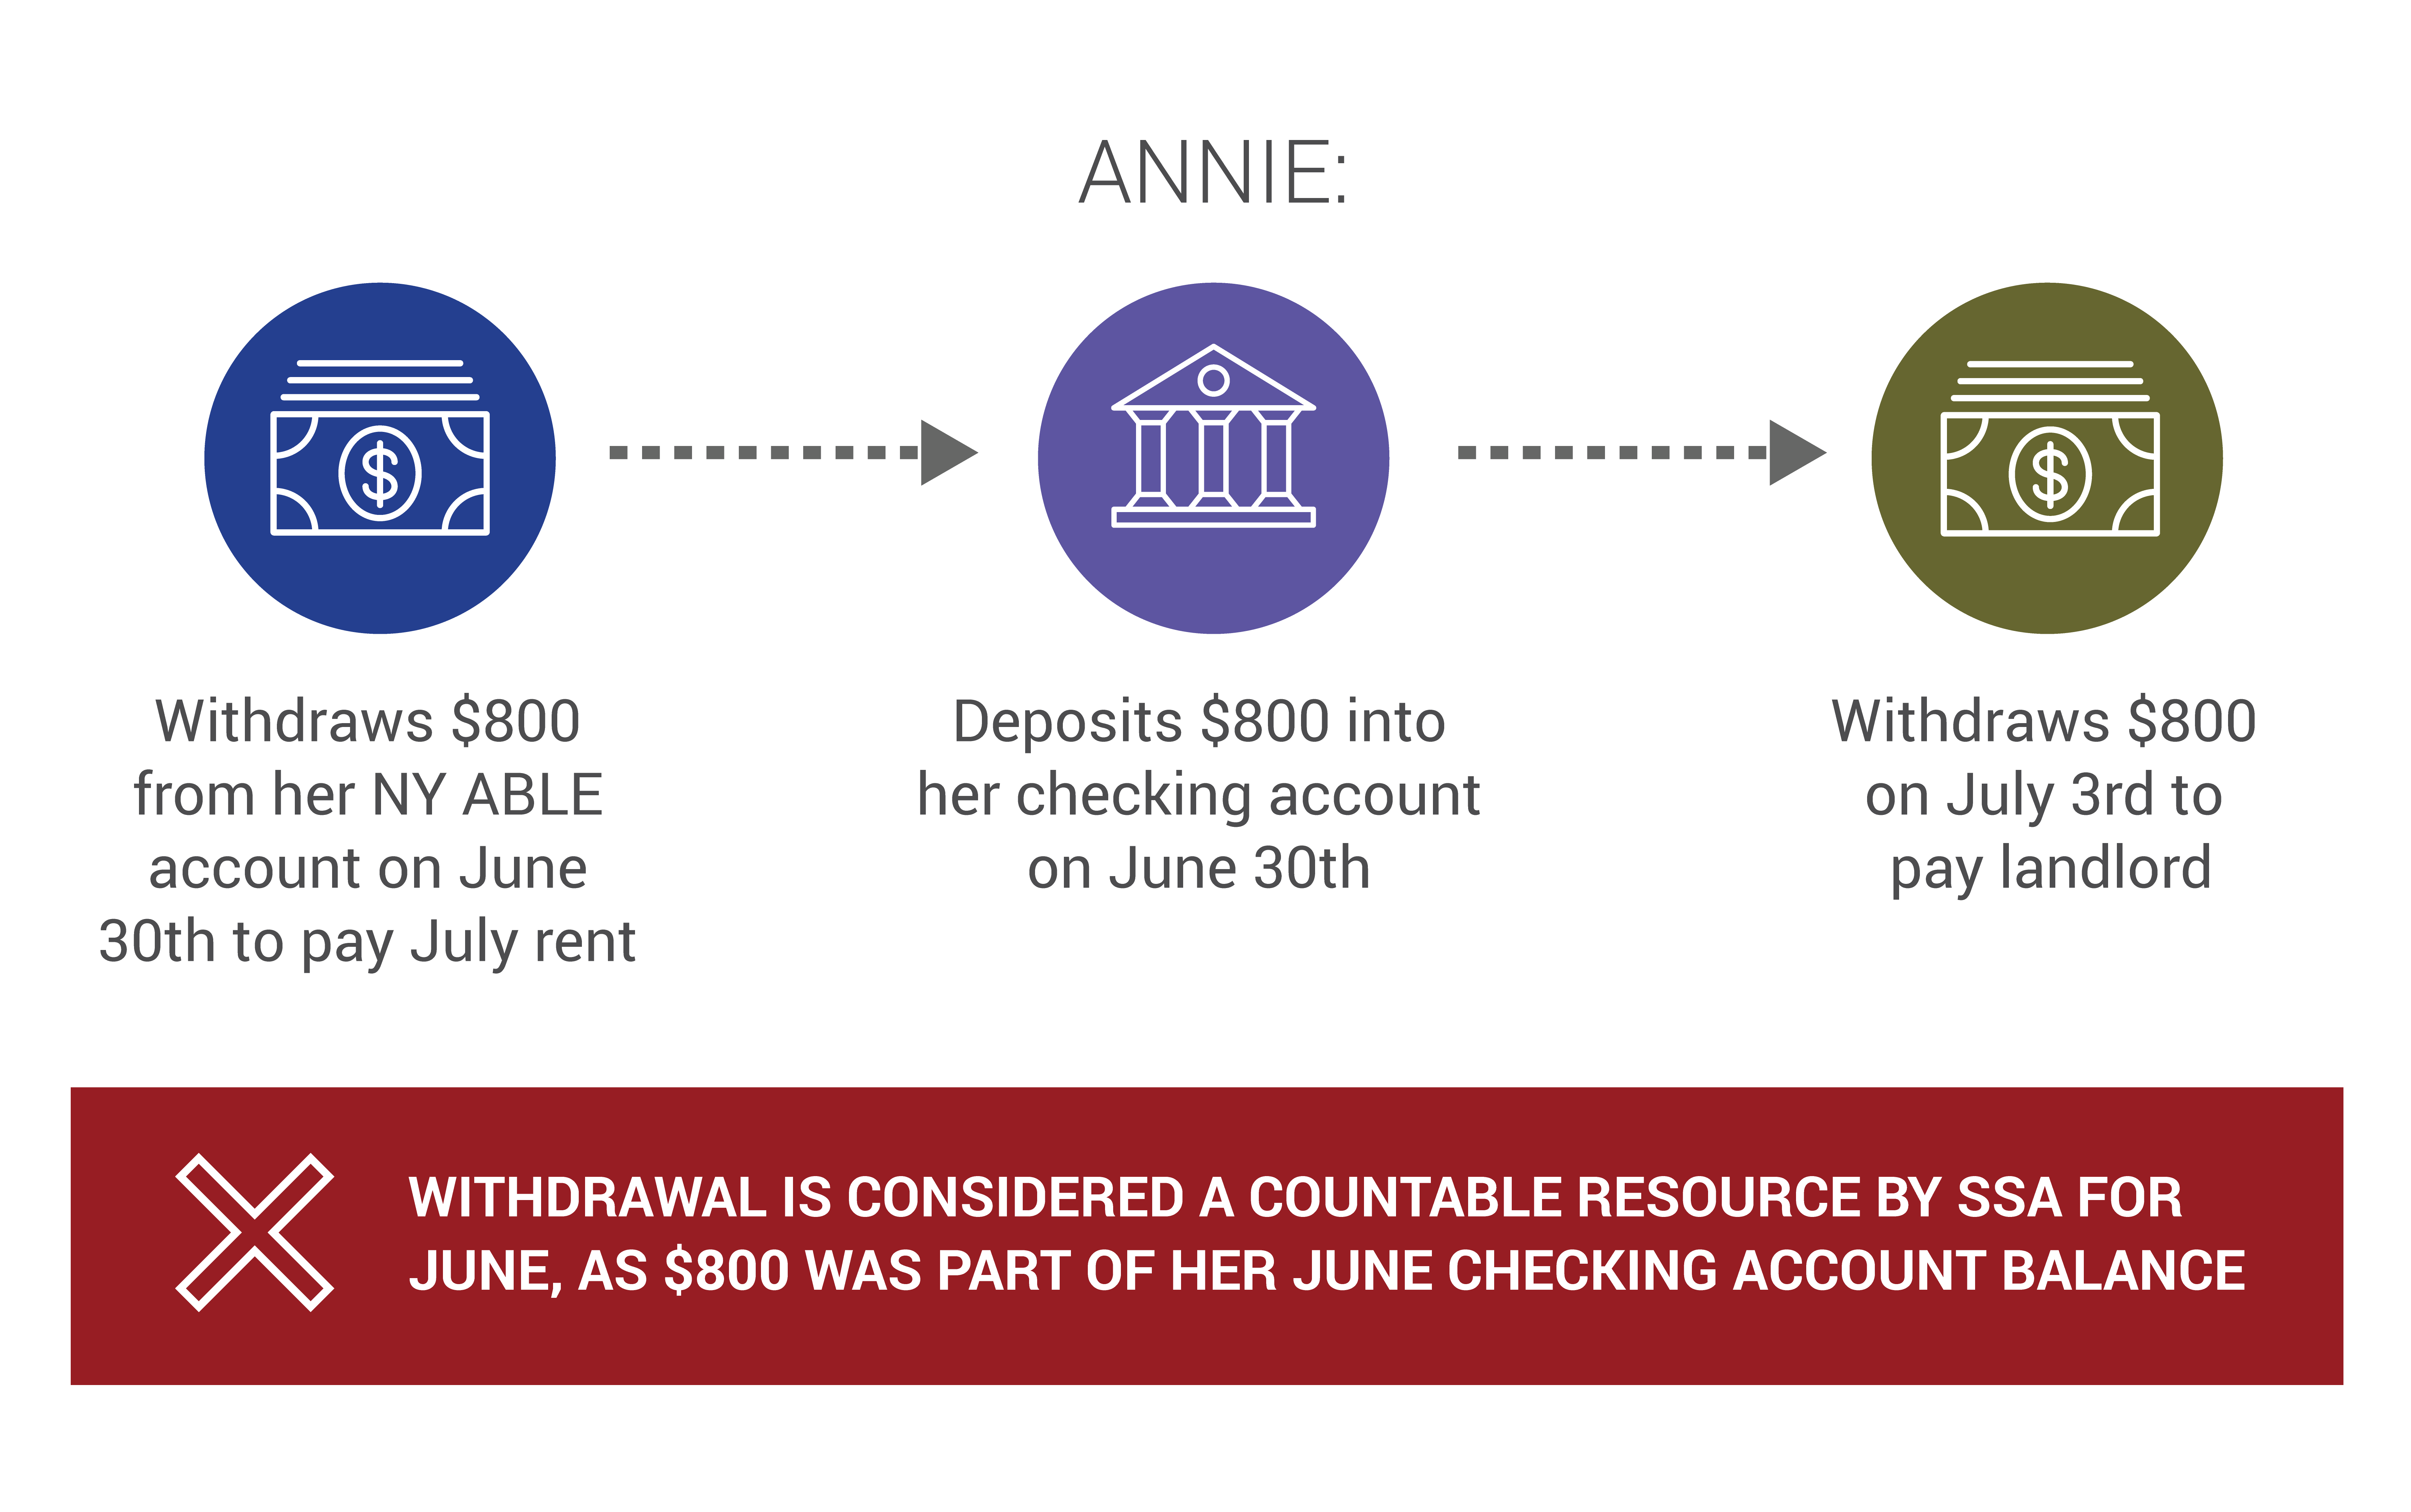 """Annie's scenario begins with her withdrawal of $800 from her NY ABLE account on June 30th to pay July rent. She then deposits $800 into her checking account on June 30th. Finally, Annie withdraws $800 on July 3rd to pay her landlord. Big red """"X"""" icon for this scenario signifies that this withdrawal is considered a countable resource by SSA for June, as $800 was part of her June checking account balance."""